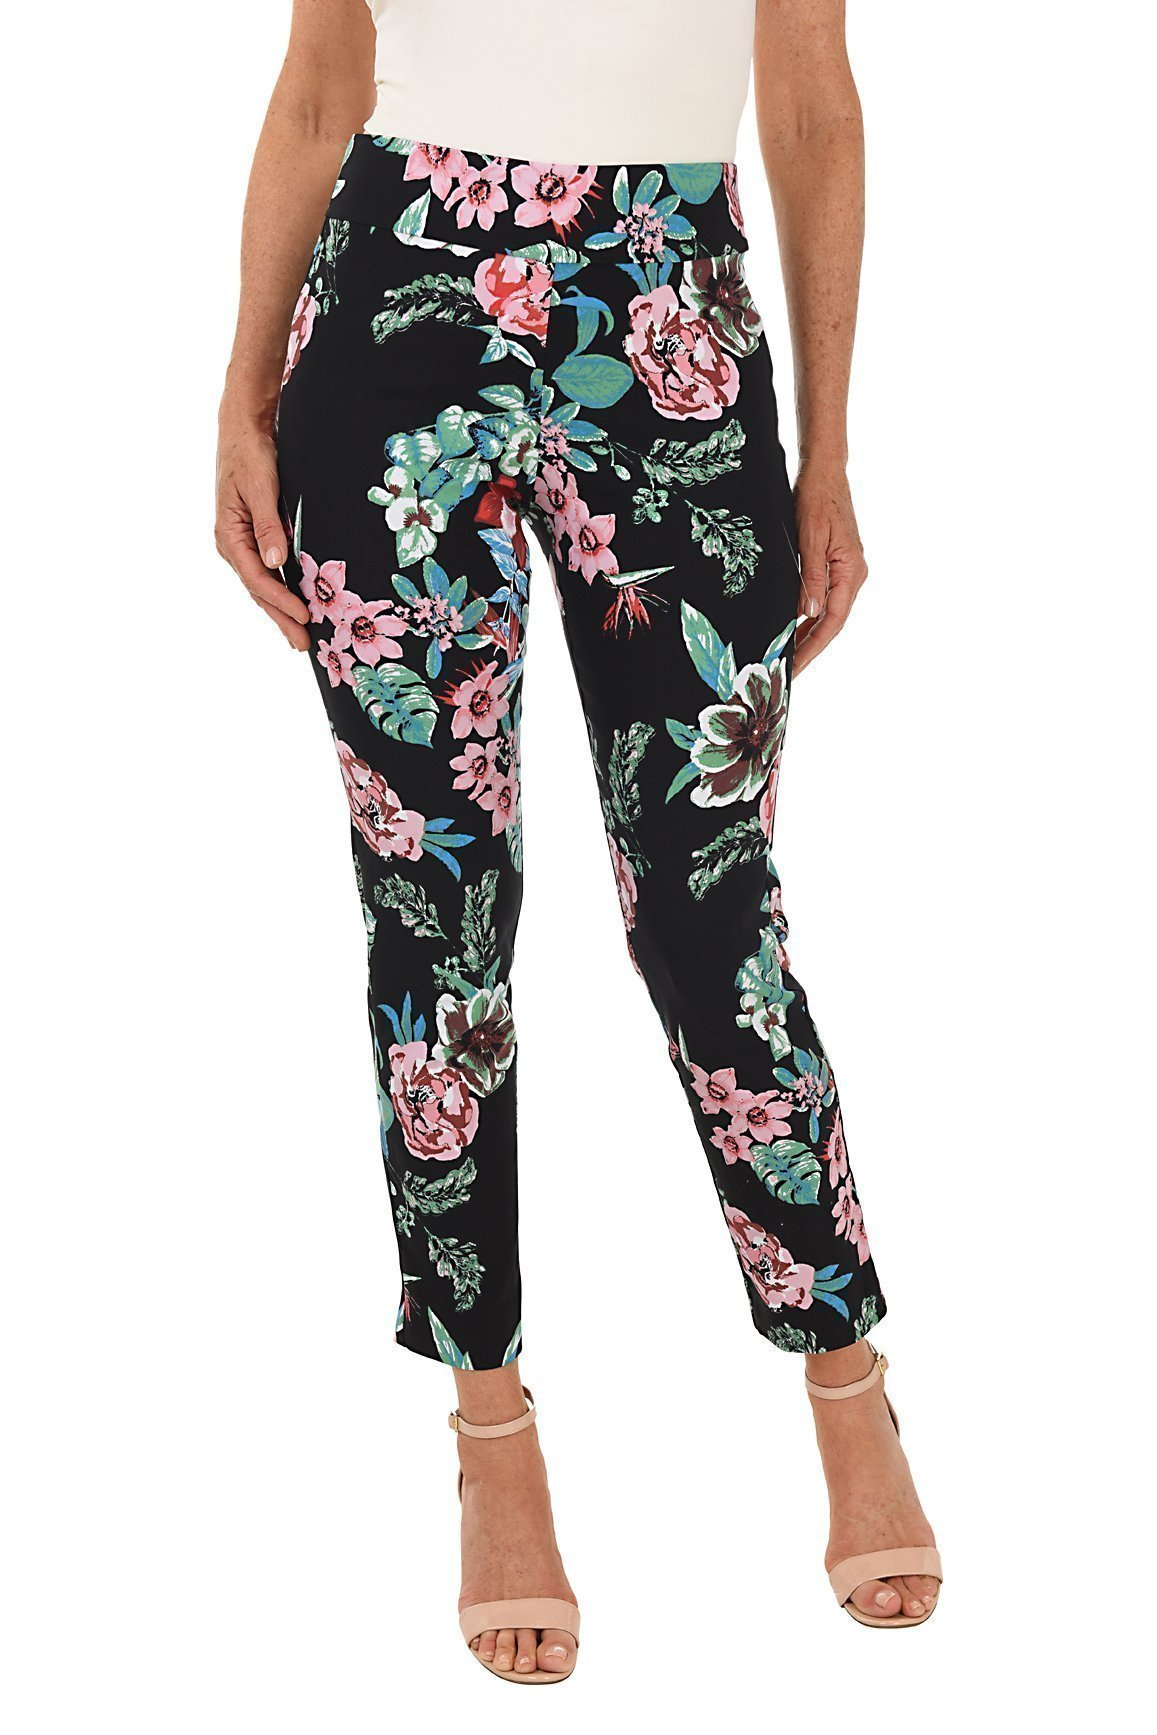 Straight Leg Pull-on Pant – Solids And Prints – Krazy Larry